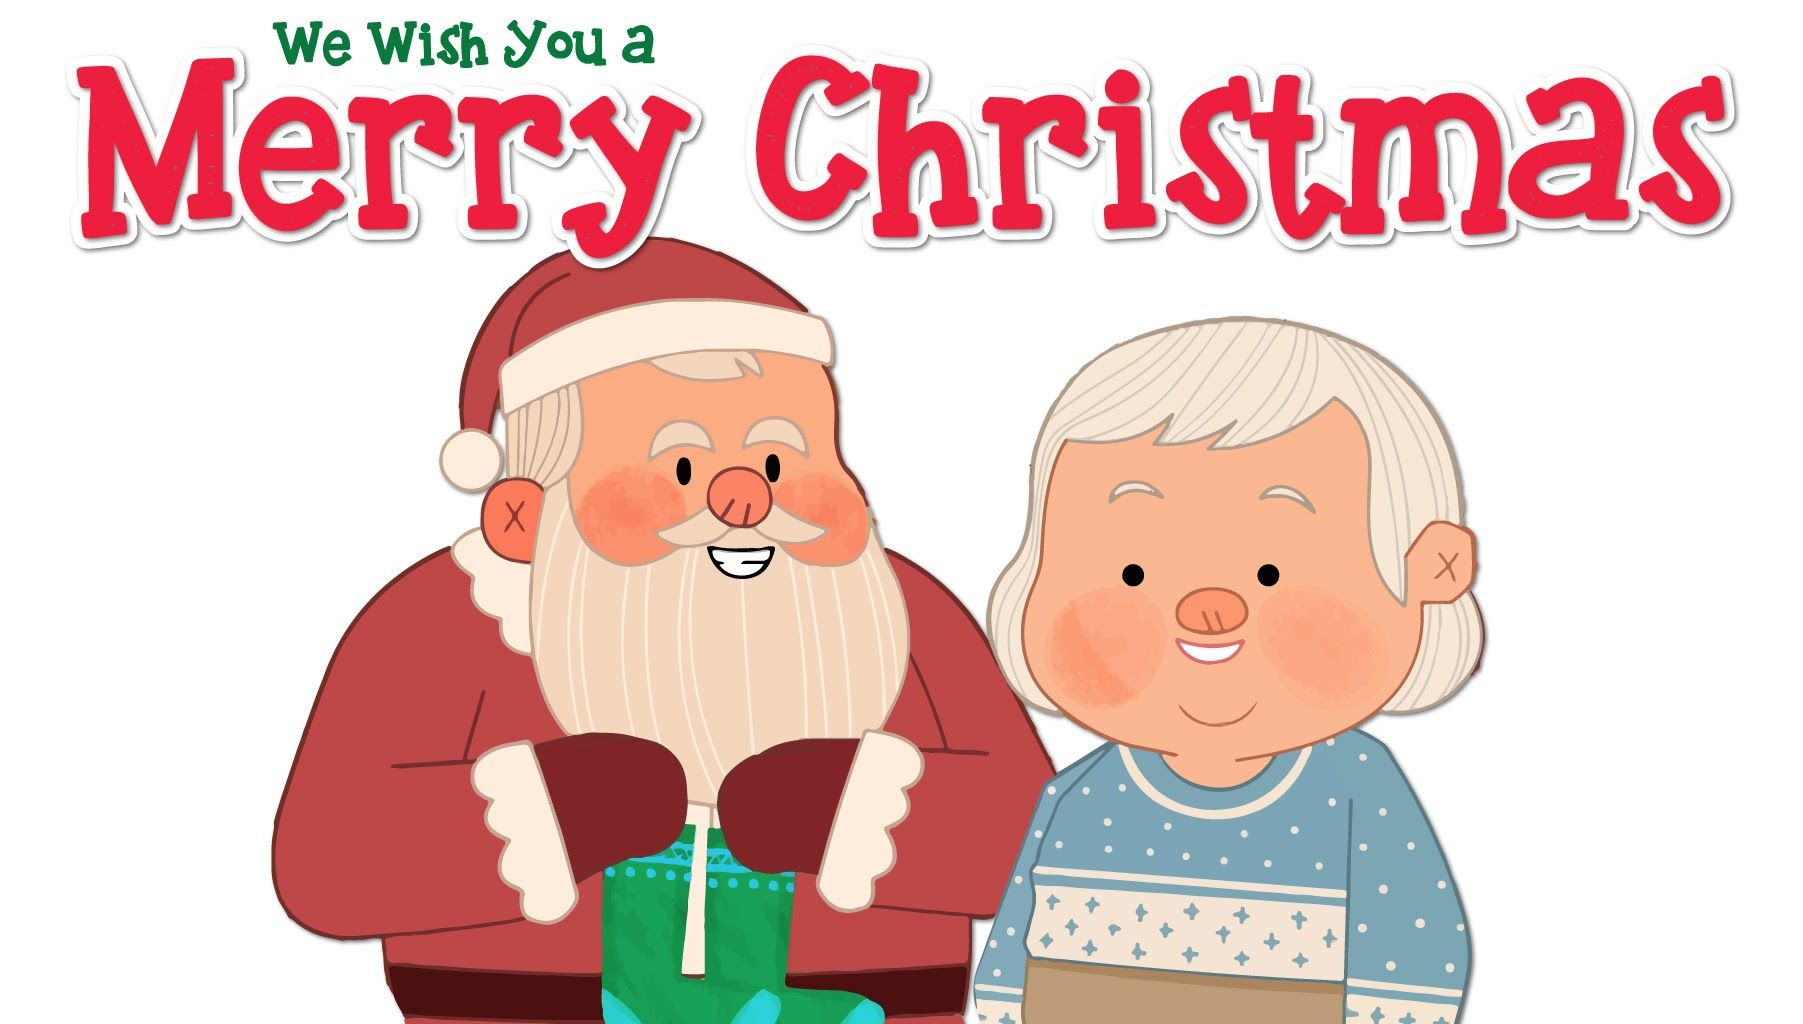 We Wish You A Merry Christmas Super Simple Songs Preschool Christmas Songs Super Simple Songs Christmas Songs For Toddlers